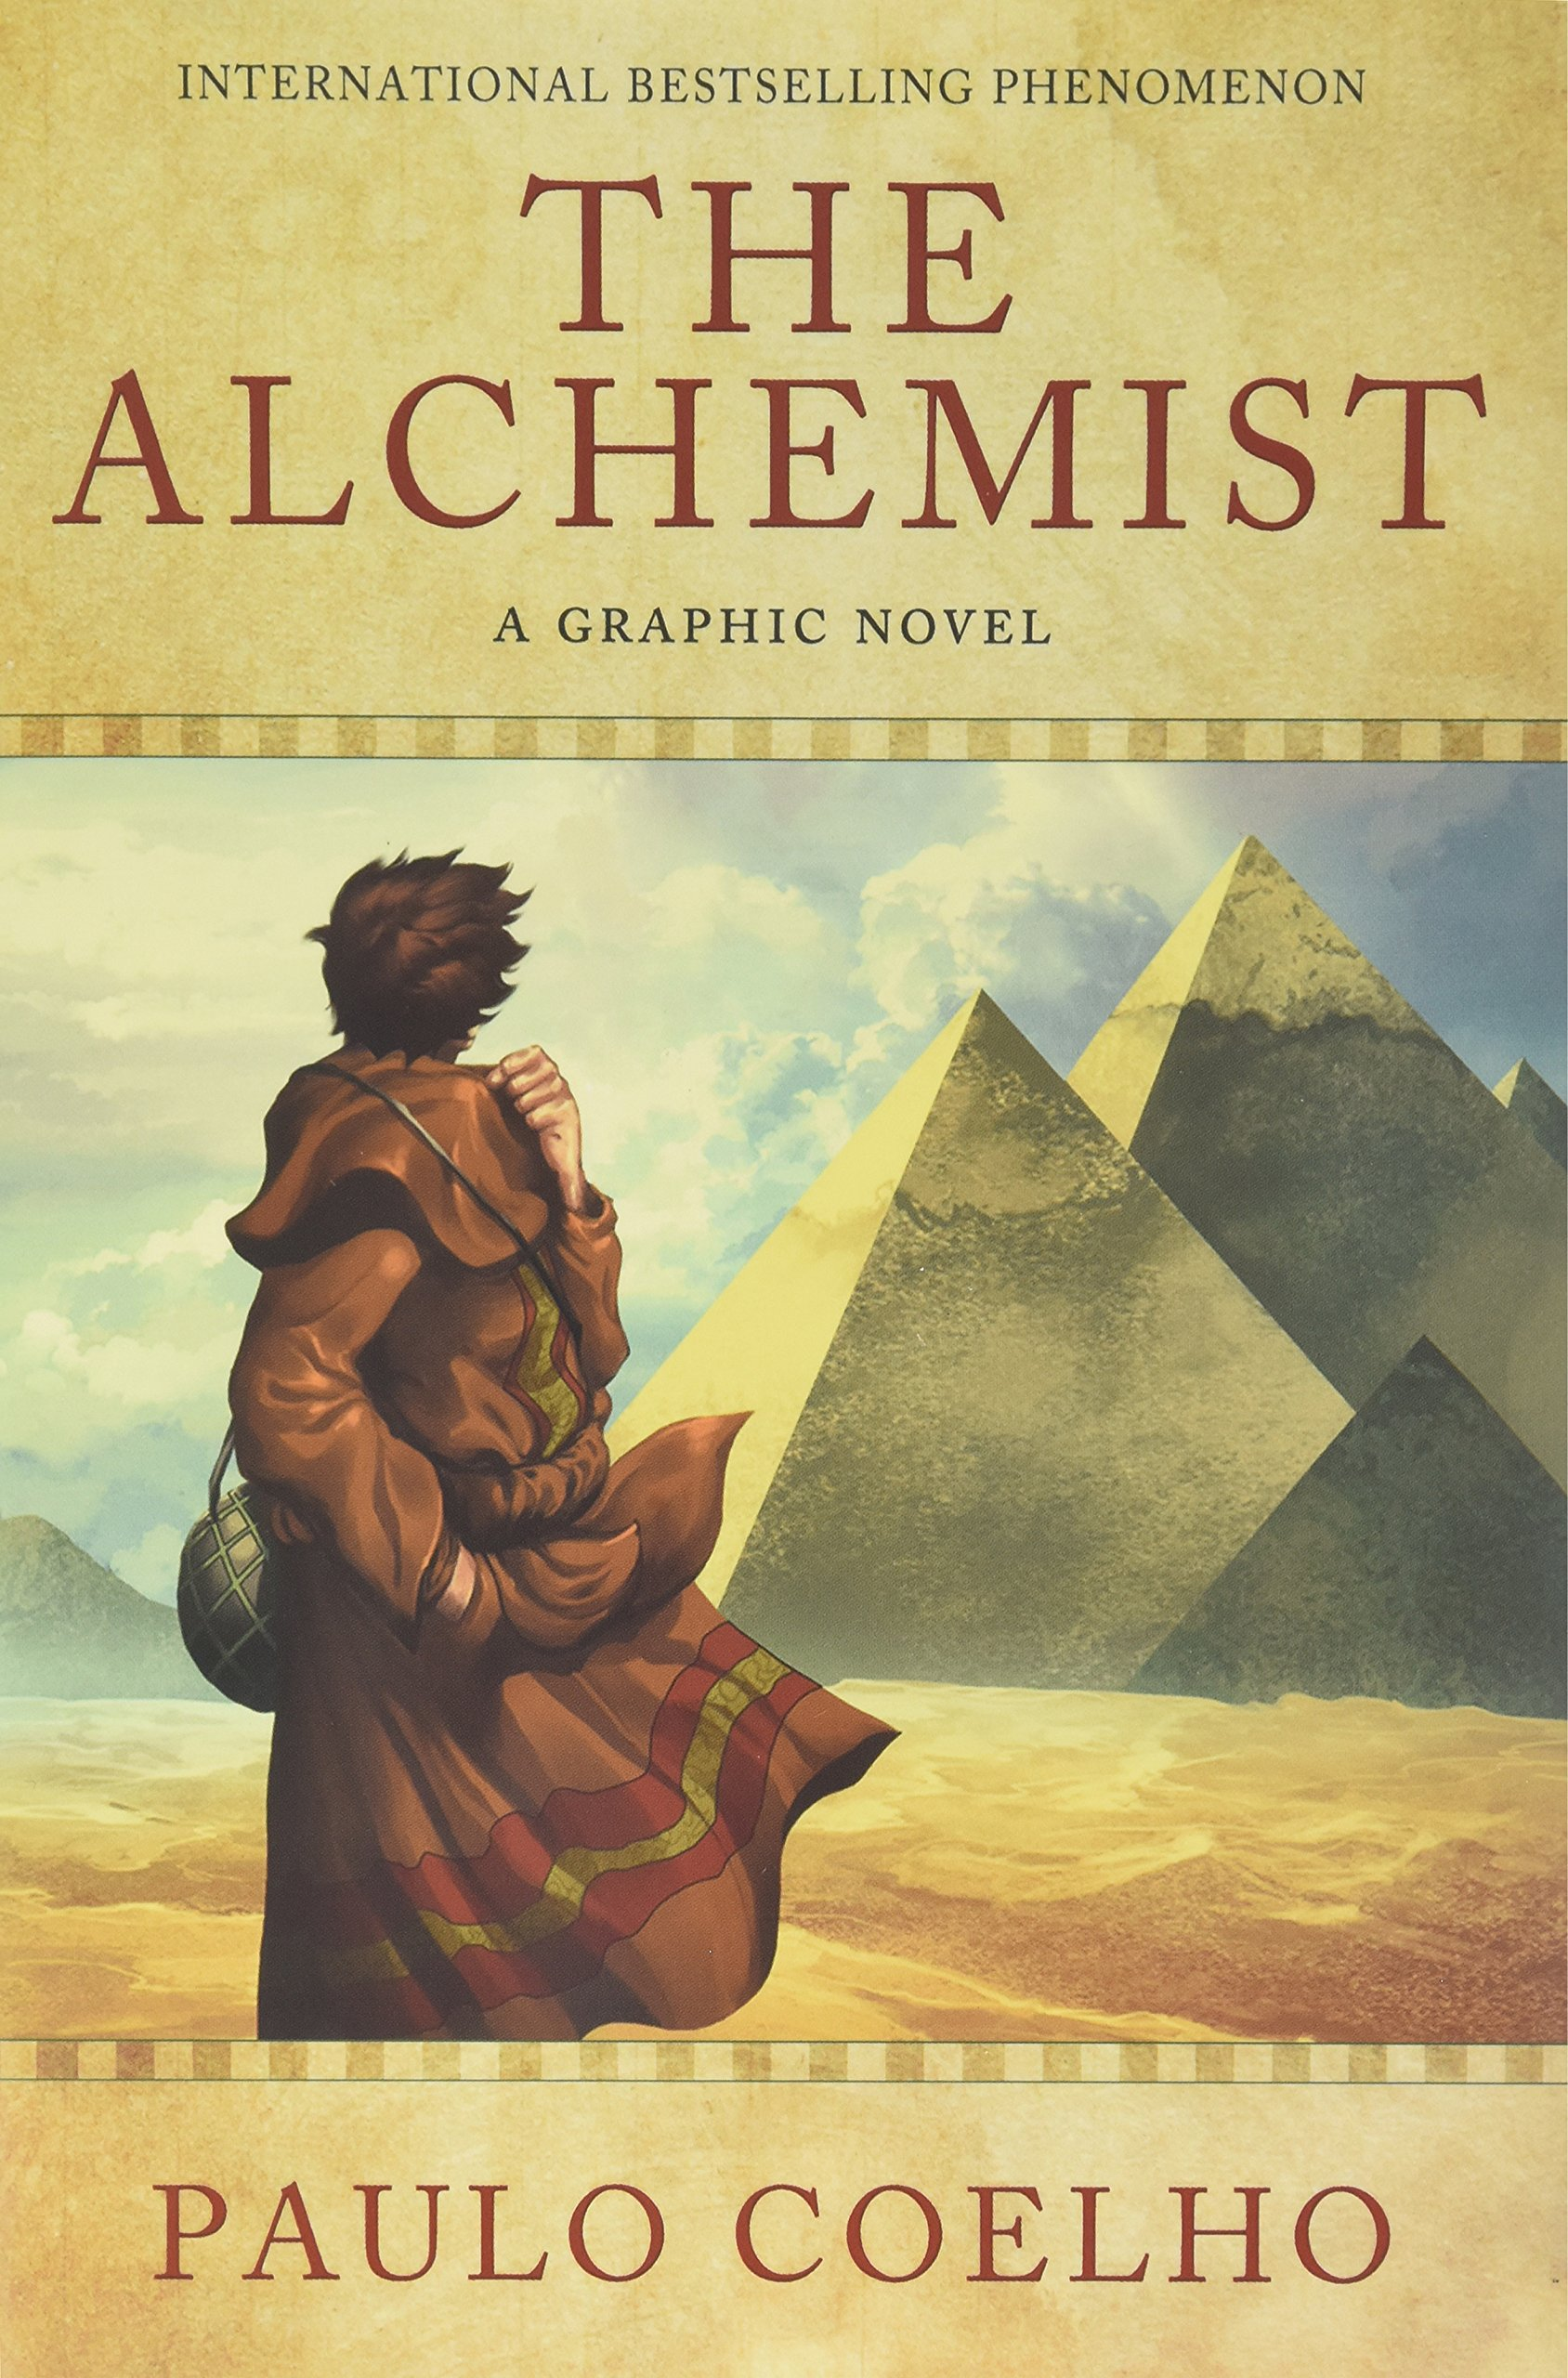 book review on alchemist best ideas about paulo coelho books the  the alchemist a graphic novel an illustrated interpretation of the alchemist a graphic novel an illustrated